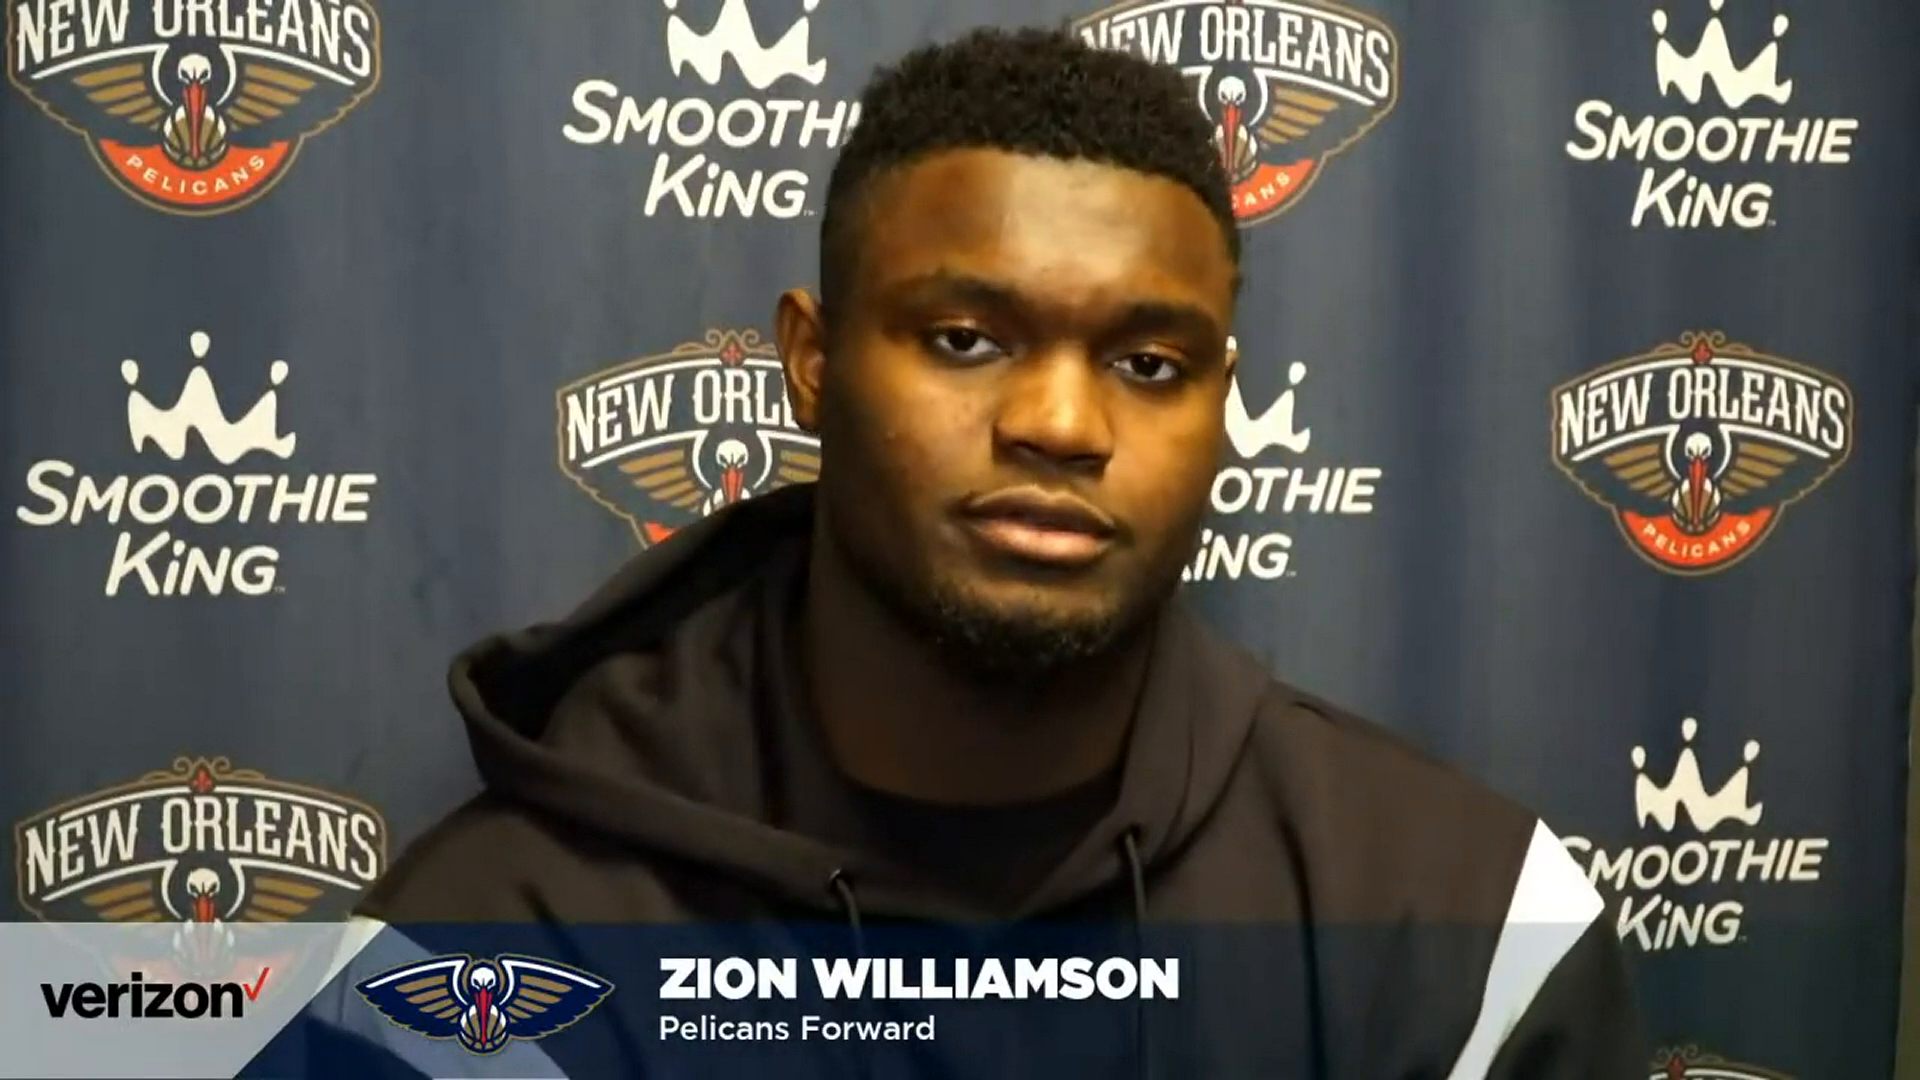 Pelicans-Magic Postgame Interview: Zion Williamson 4-22-21